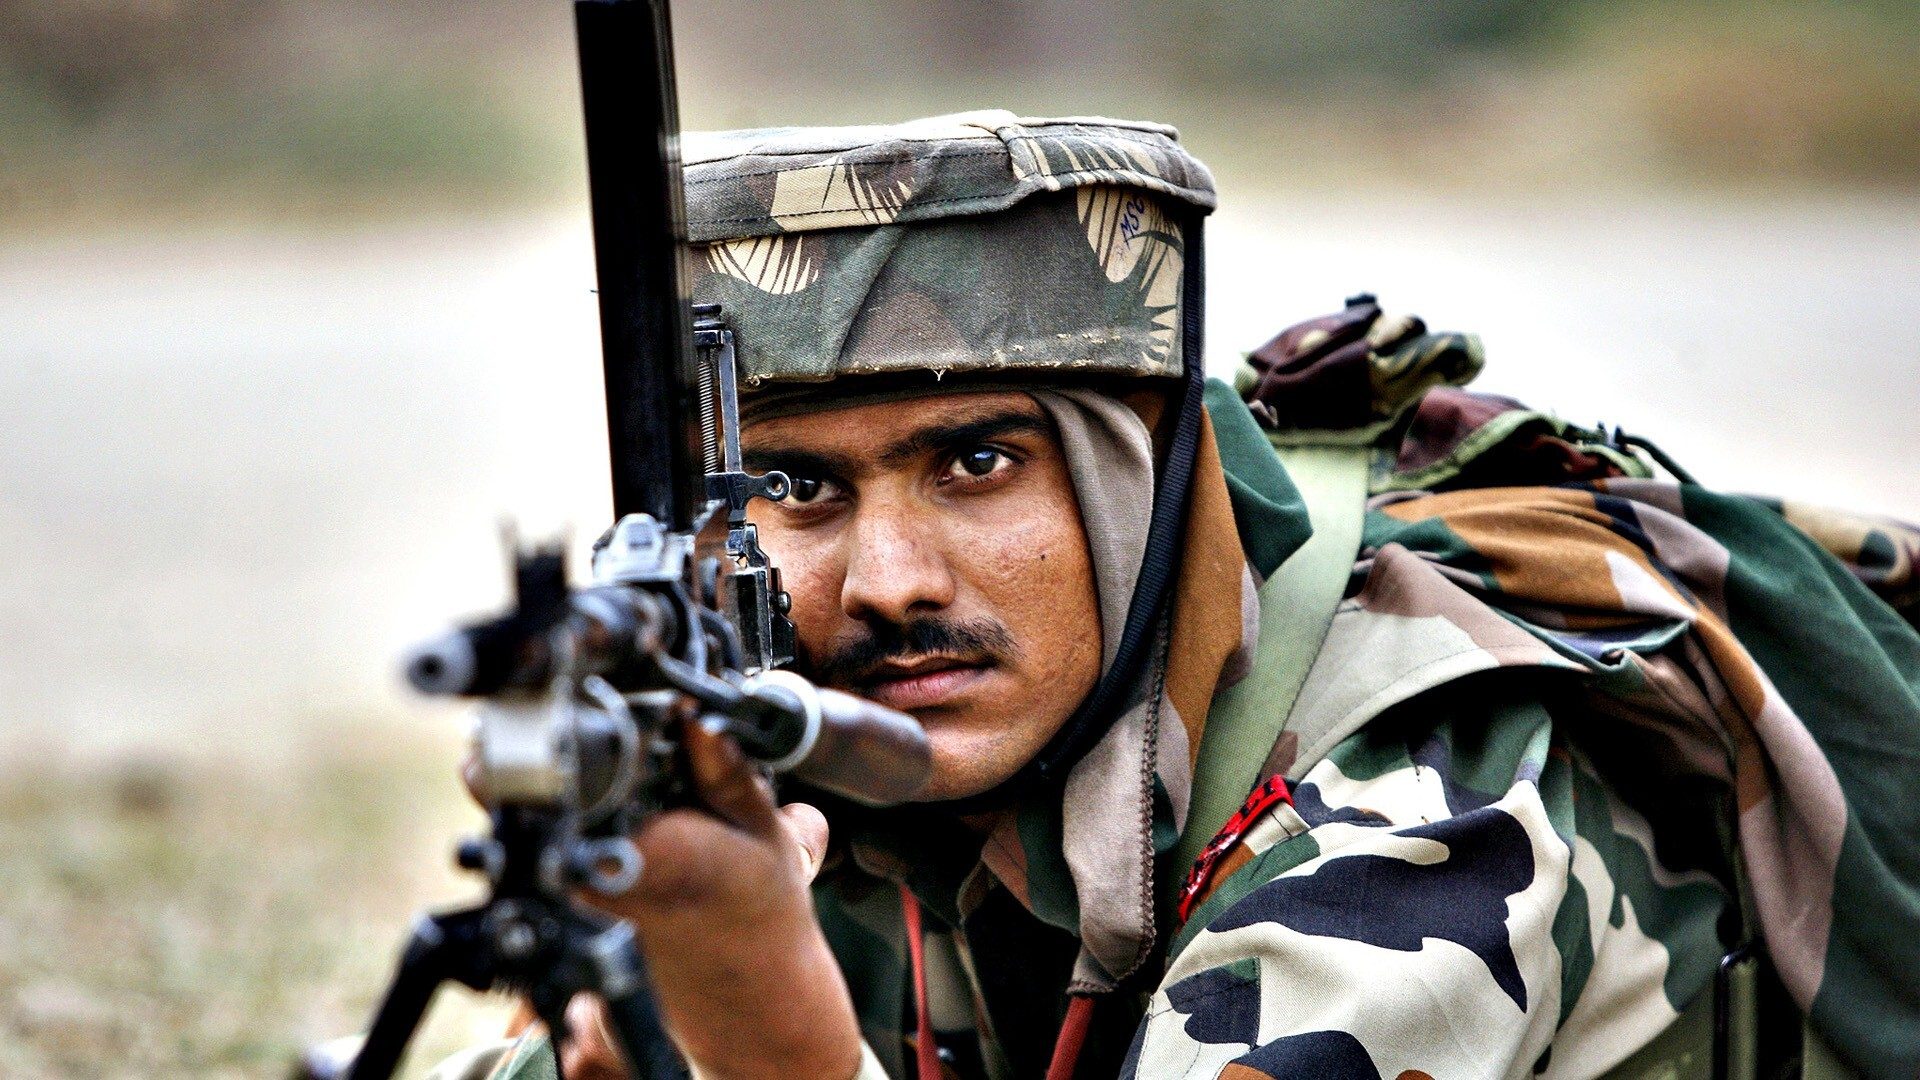 Indian Soldier Shooting With Gun